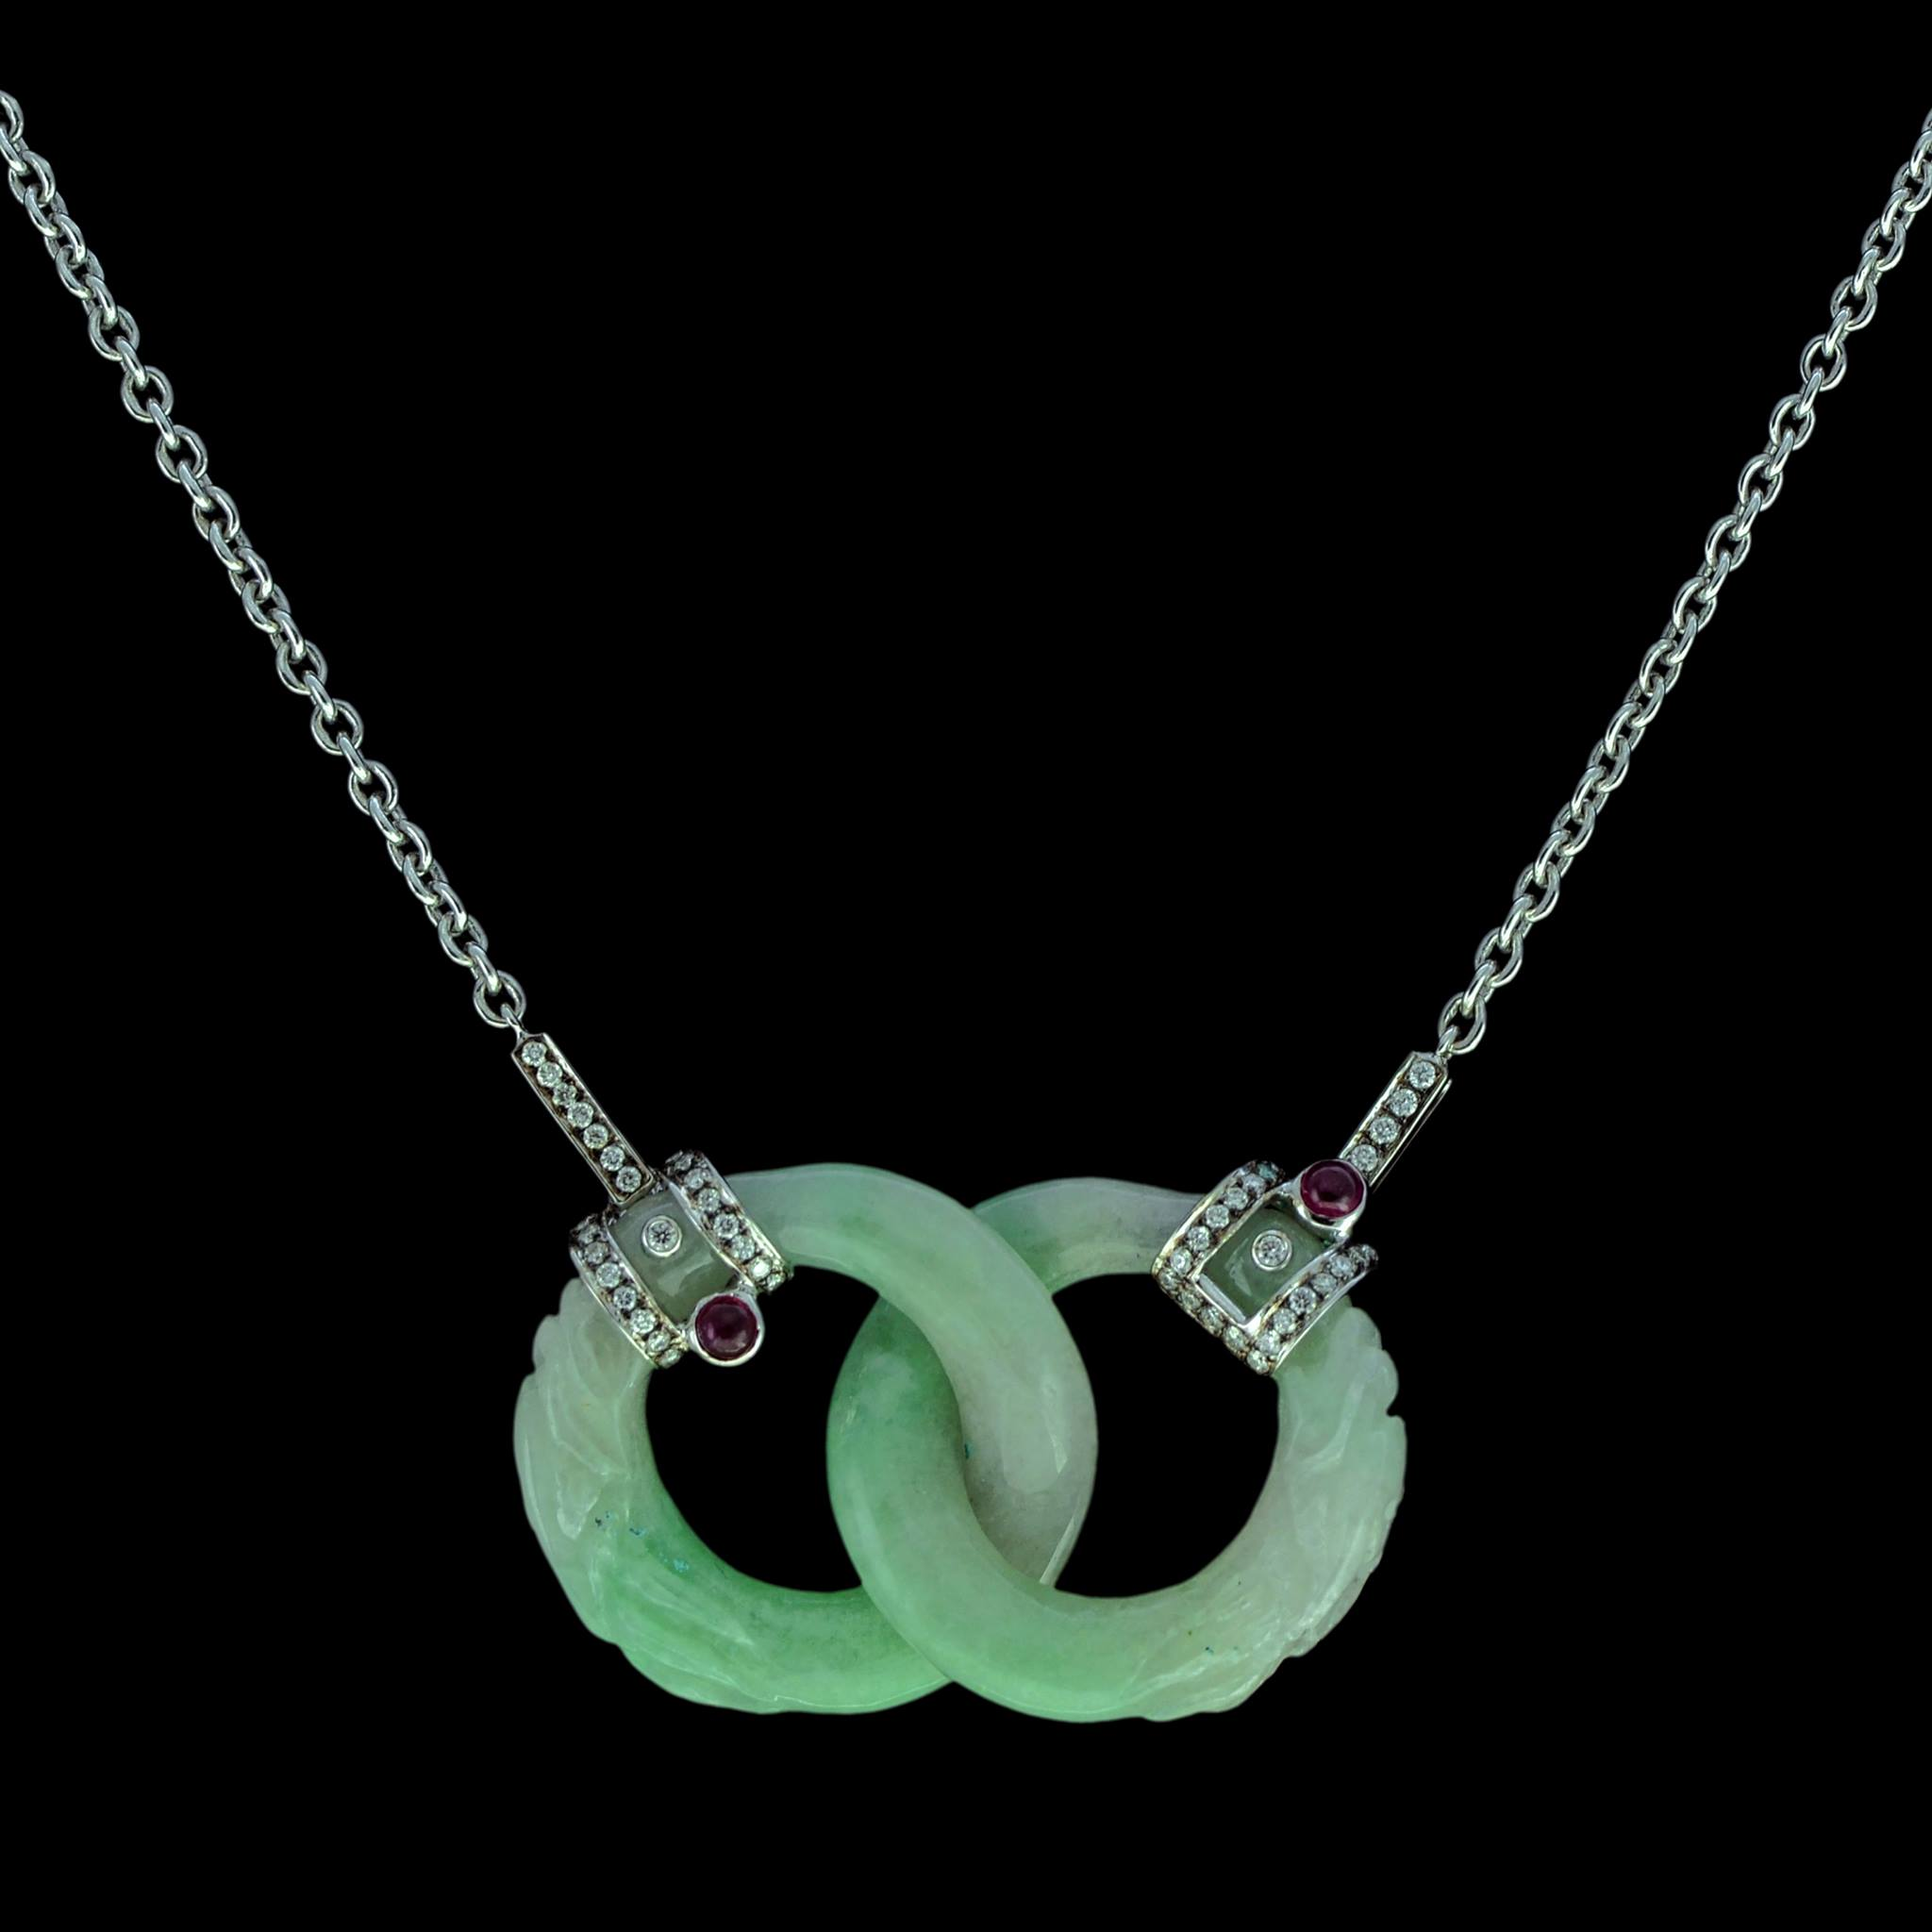 luck over long prosperity good golden life necklace jade sterling silver pendant chinese finish in green